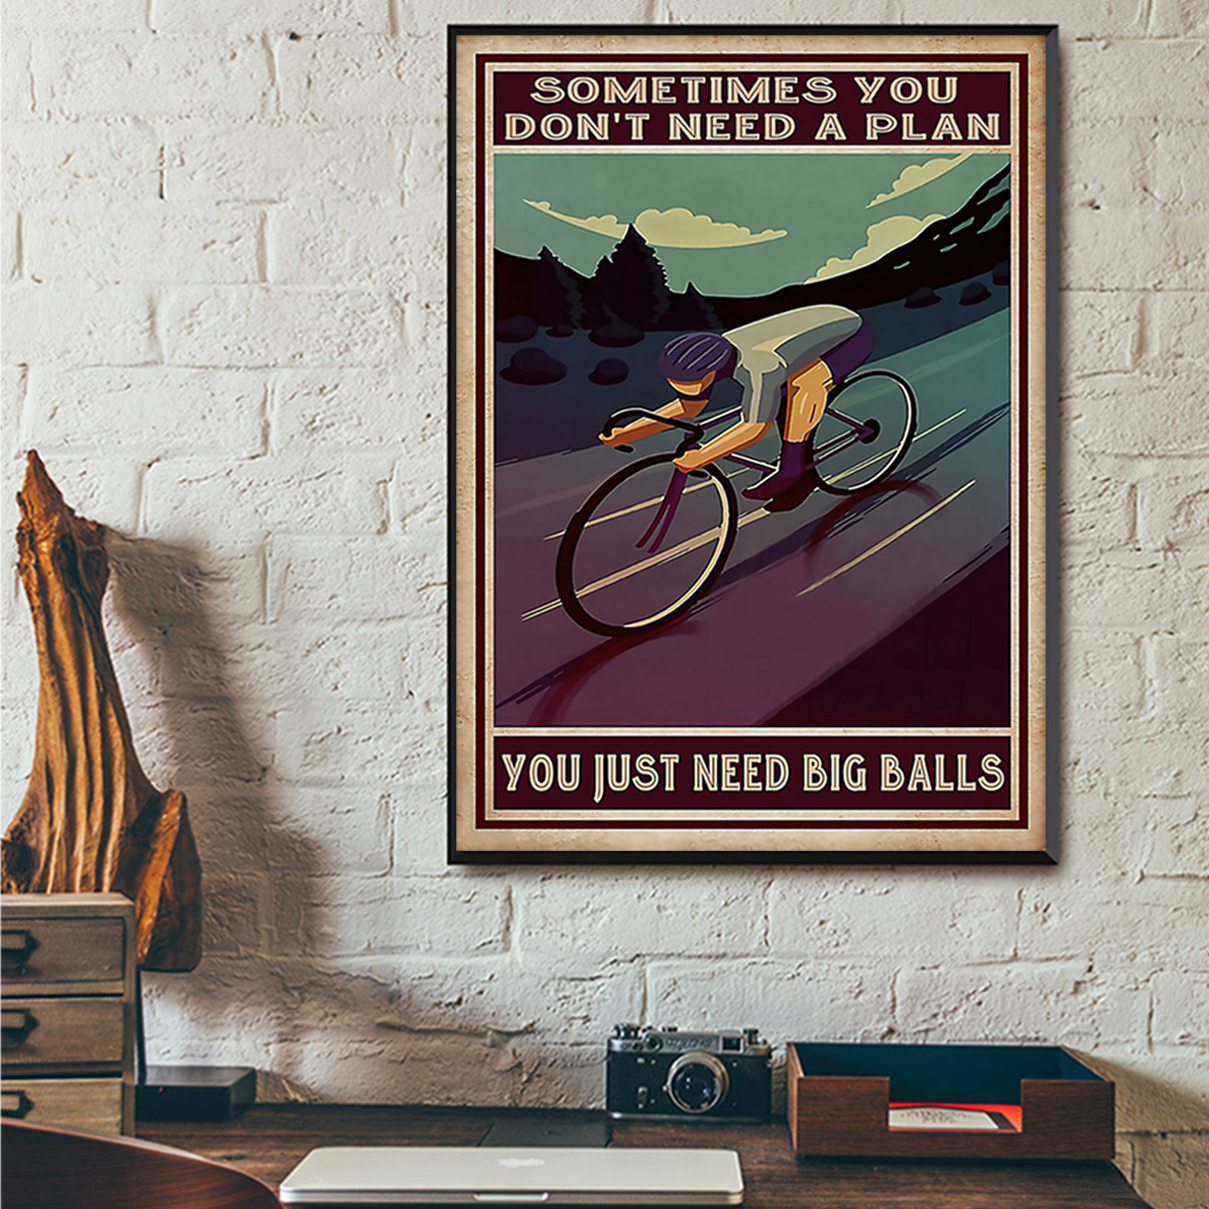 Cycling sometimes you don't need a plan poster A2